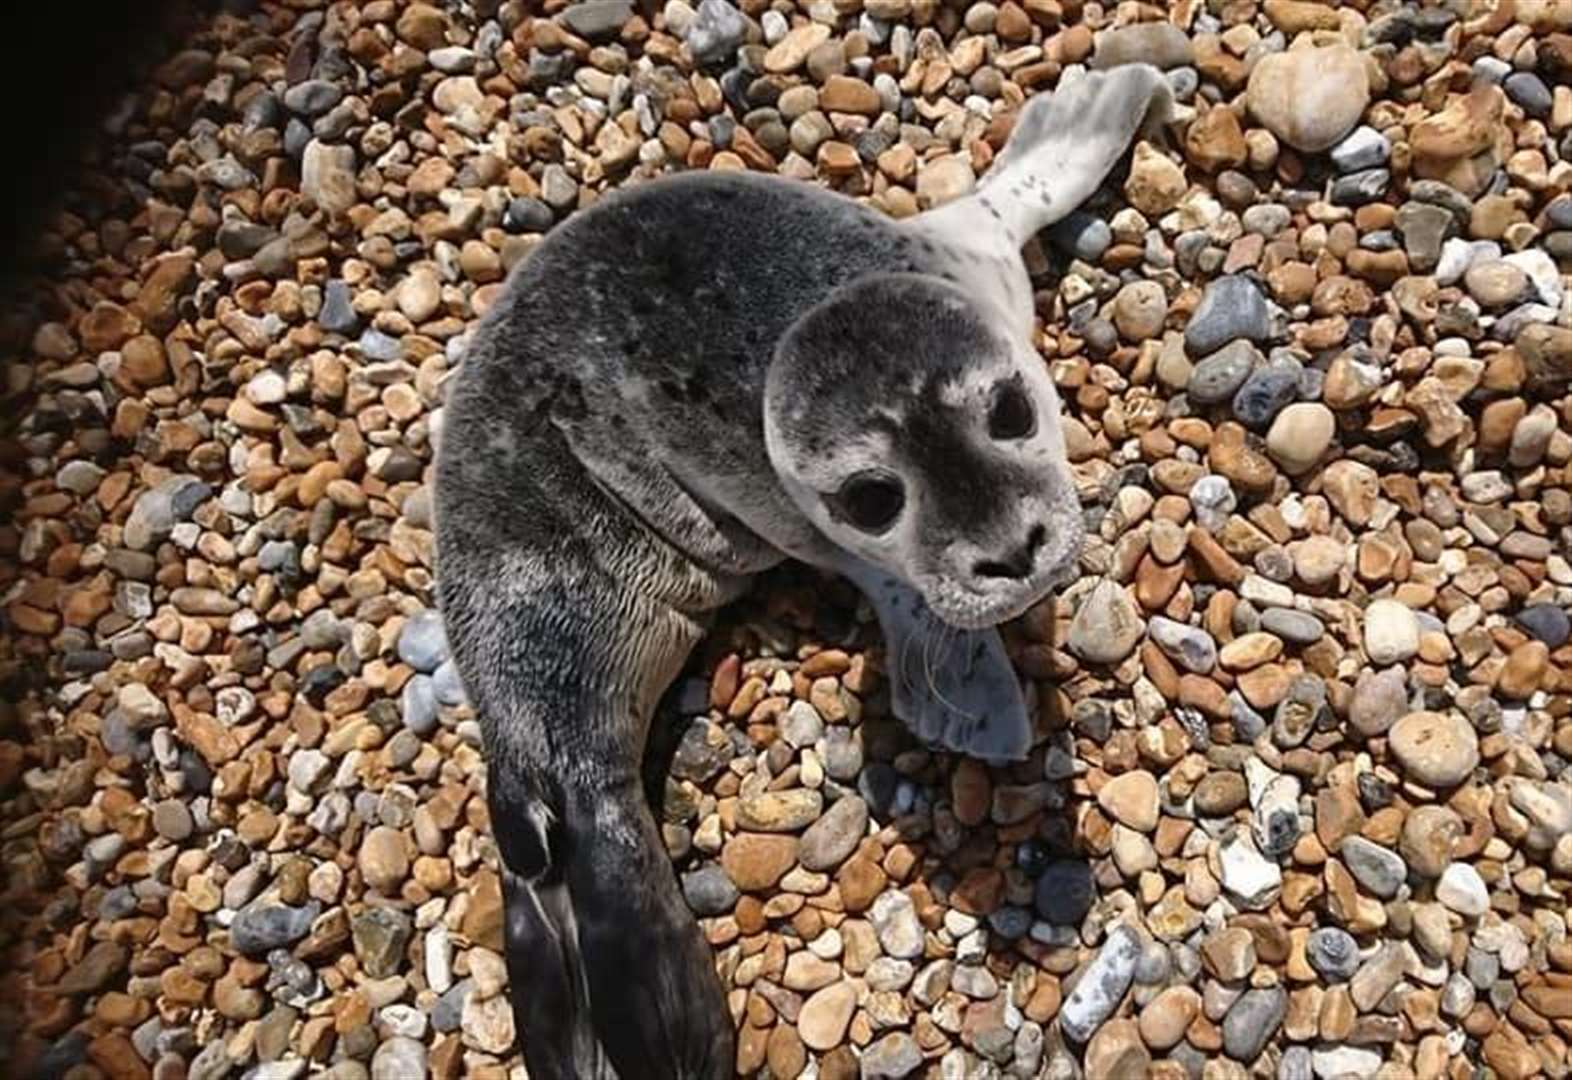 Young seal pup found dehydrated in heat